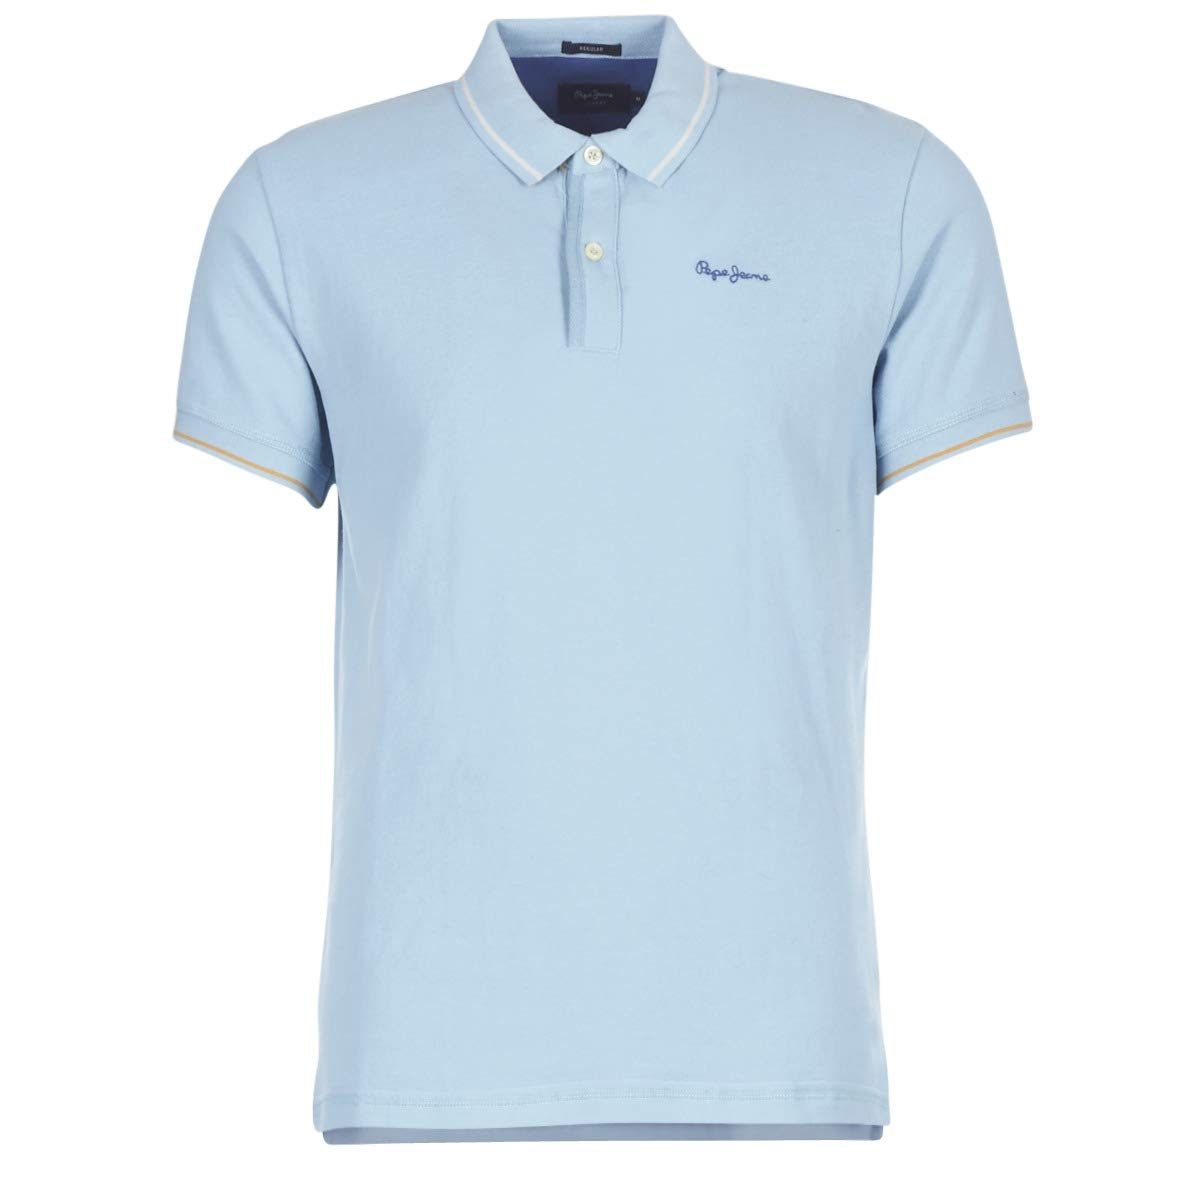 Pepe Jeans Pm540987 506 - Polo Angelico - Azul pálido Azul M ...